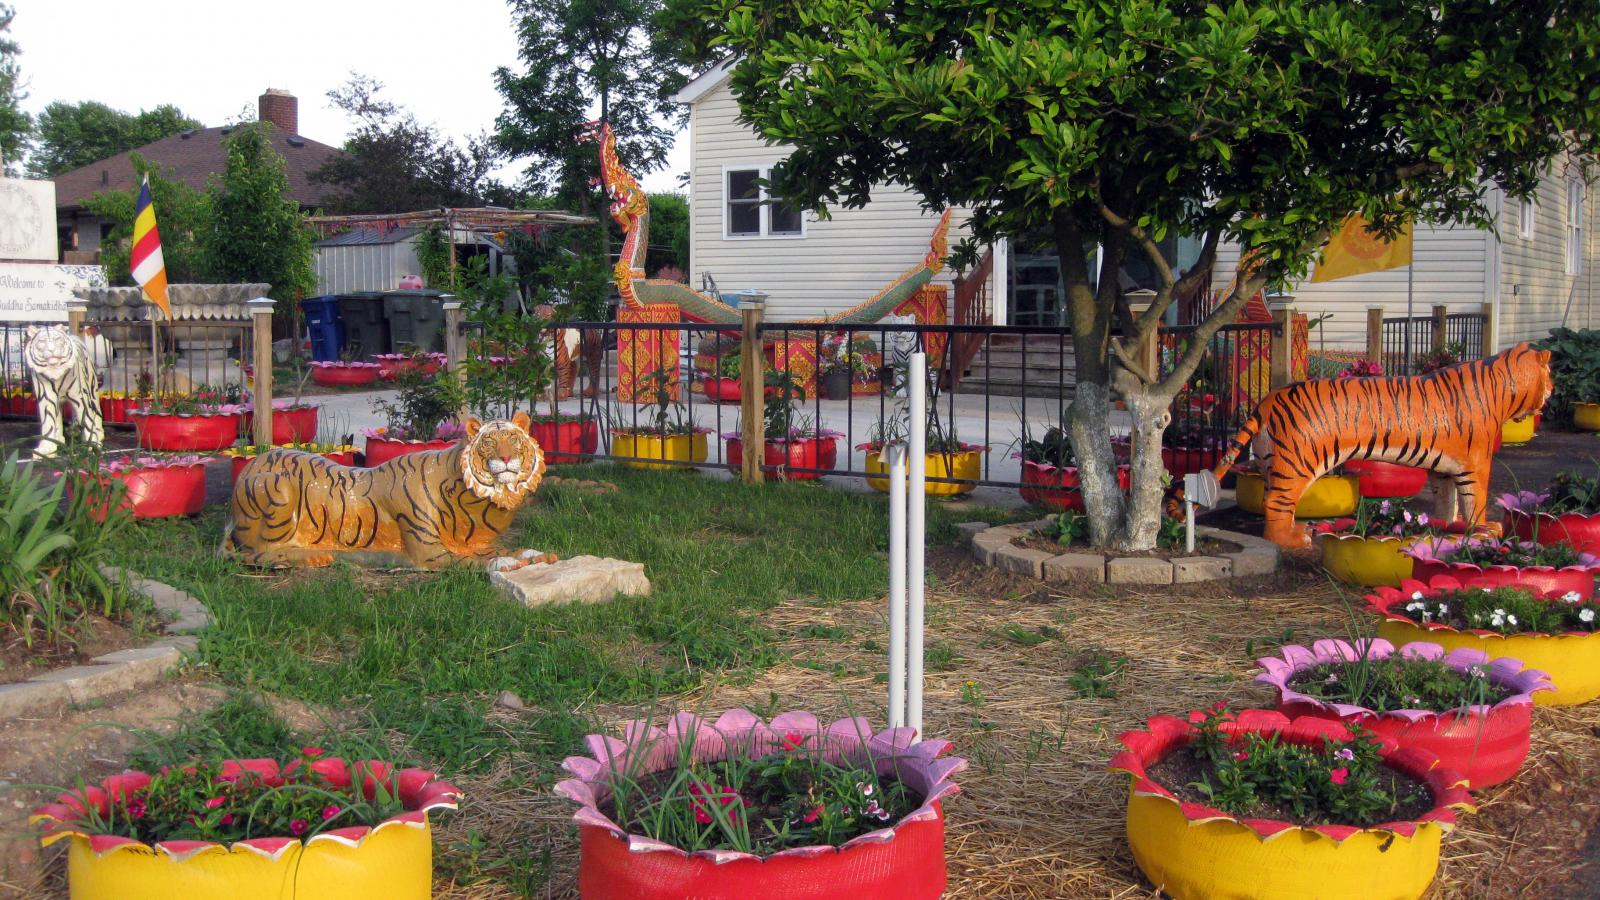 The yard outside the home/temple is elaborately decorated with painted concrete animals and colorful up-cycled tire planters, all of which were created by the various monks that have lived in Wat Buddhasamakidham.